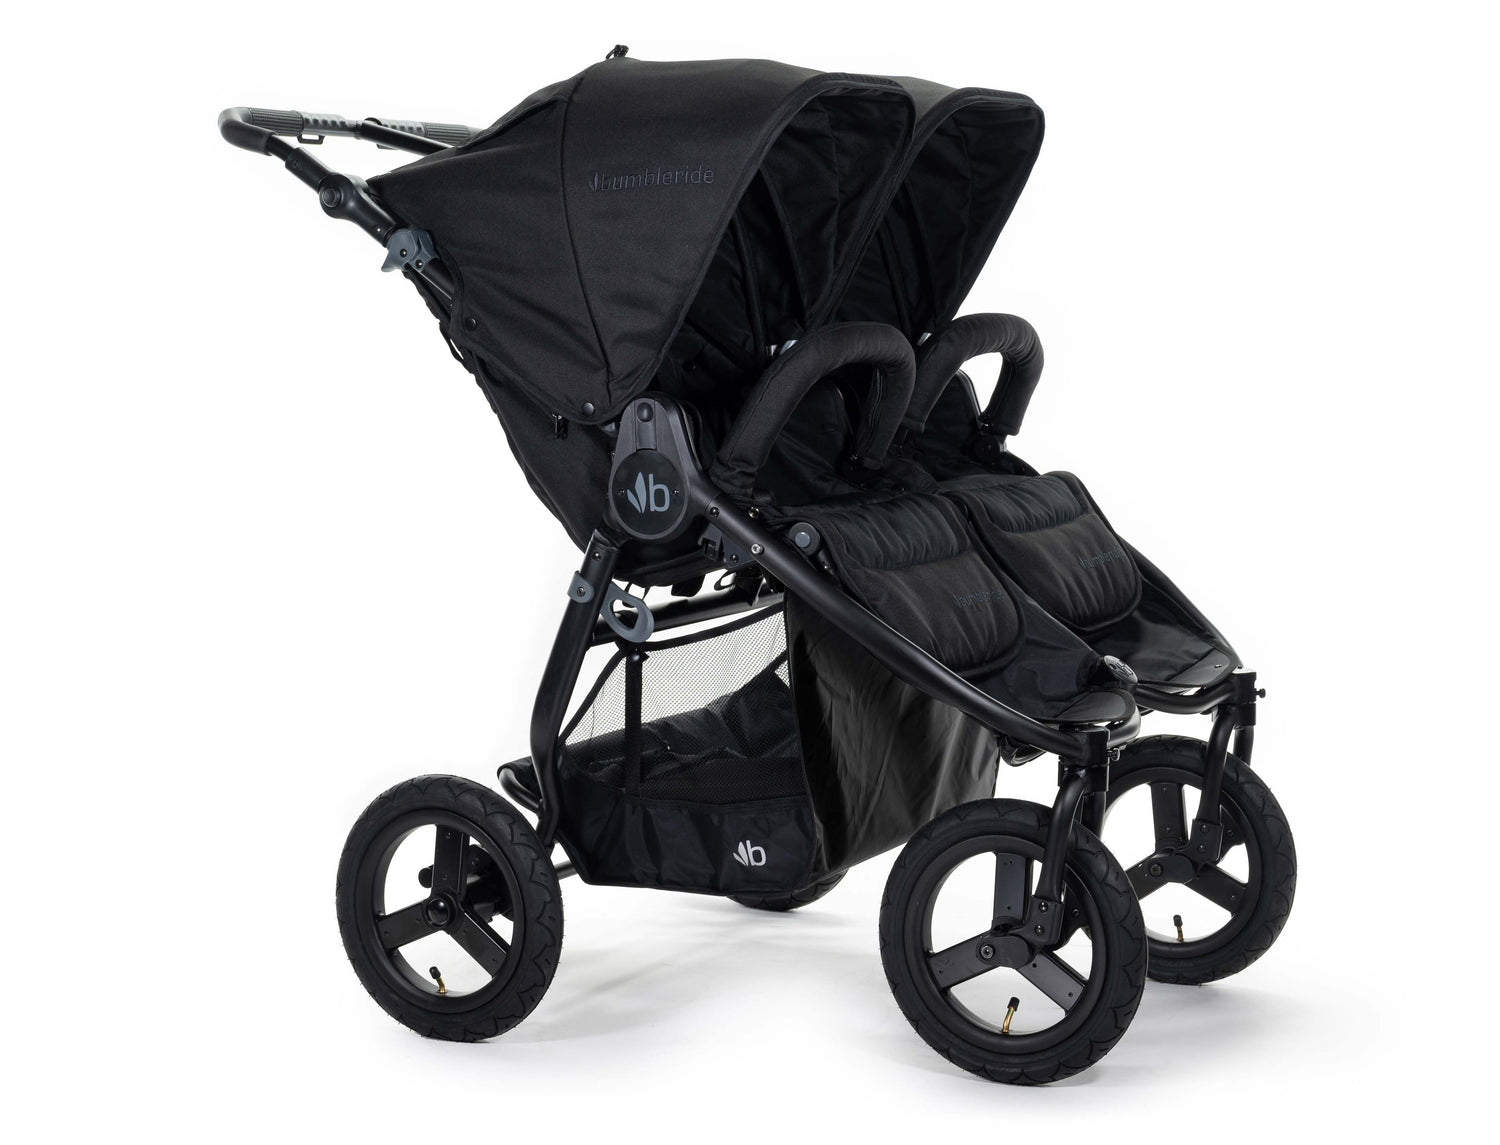 2020 Bumbleride Indie Twin Double Stroller in Matte Black - Front